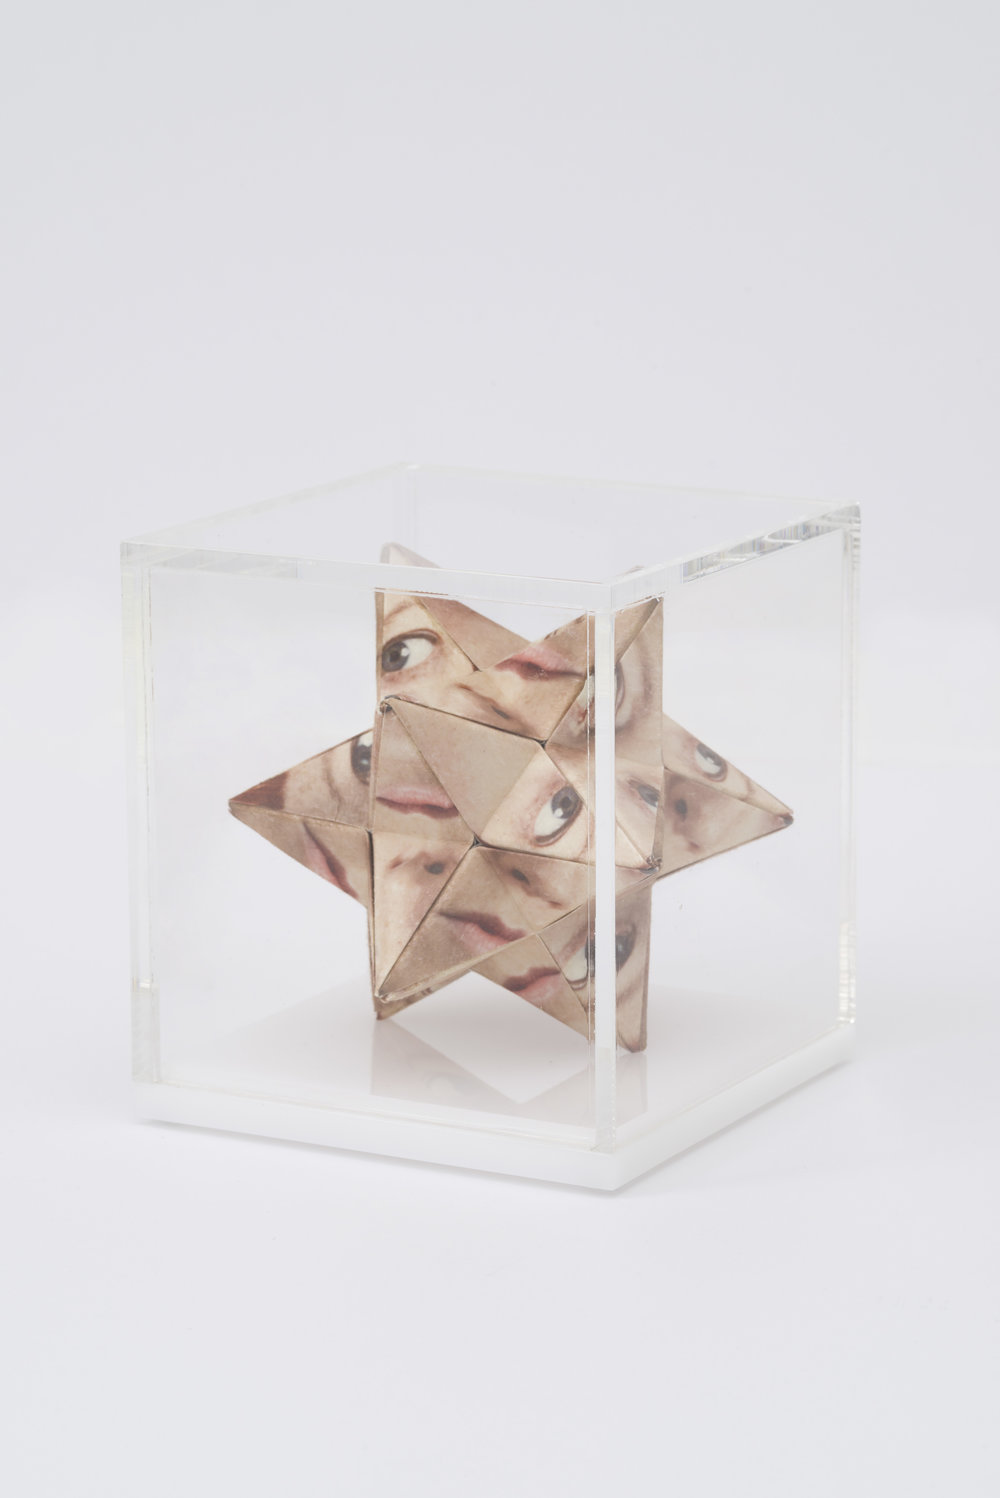 Alma Haser,  Prototype No. 36 (Zoniel) , 2016  Digital pigment print with folded digital pigment print sculpture, plexiglass box, 12 x 12 x 12 cm (approx. 5 x 5 x 5 in), edition of 5   Inquire